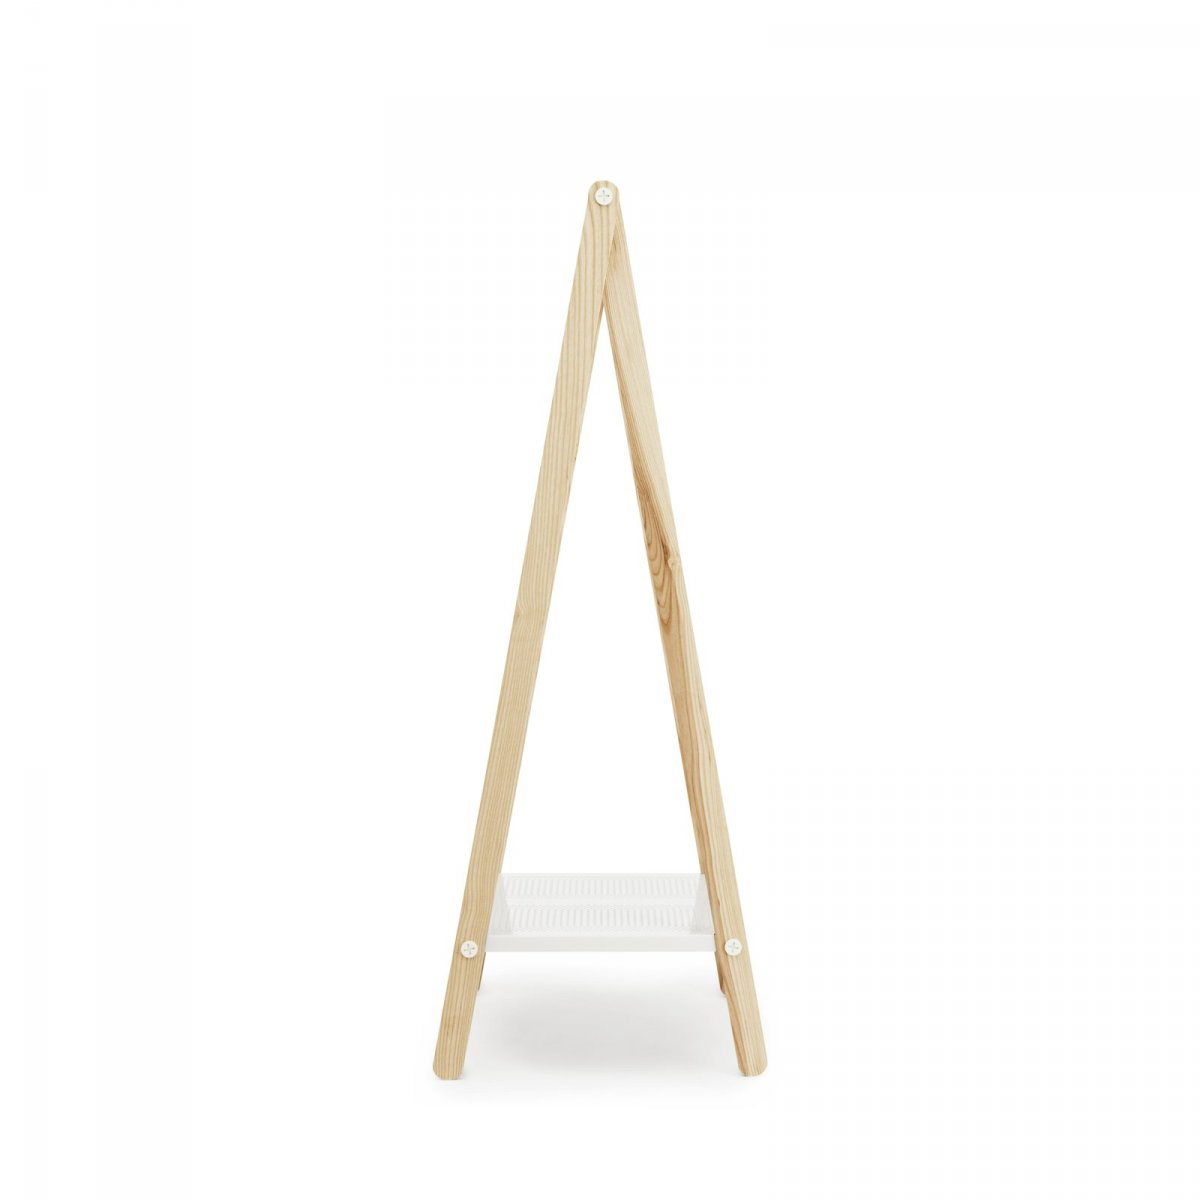 Toj Clothes Rack Small, white, side view.